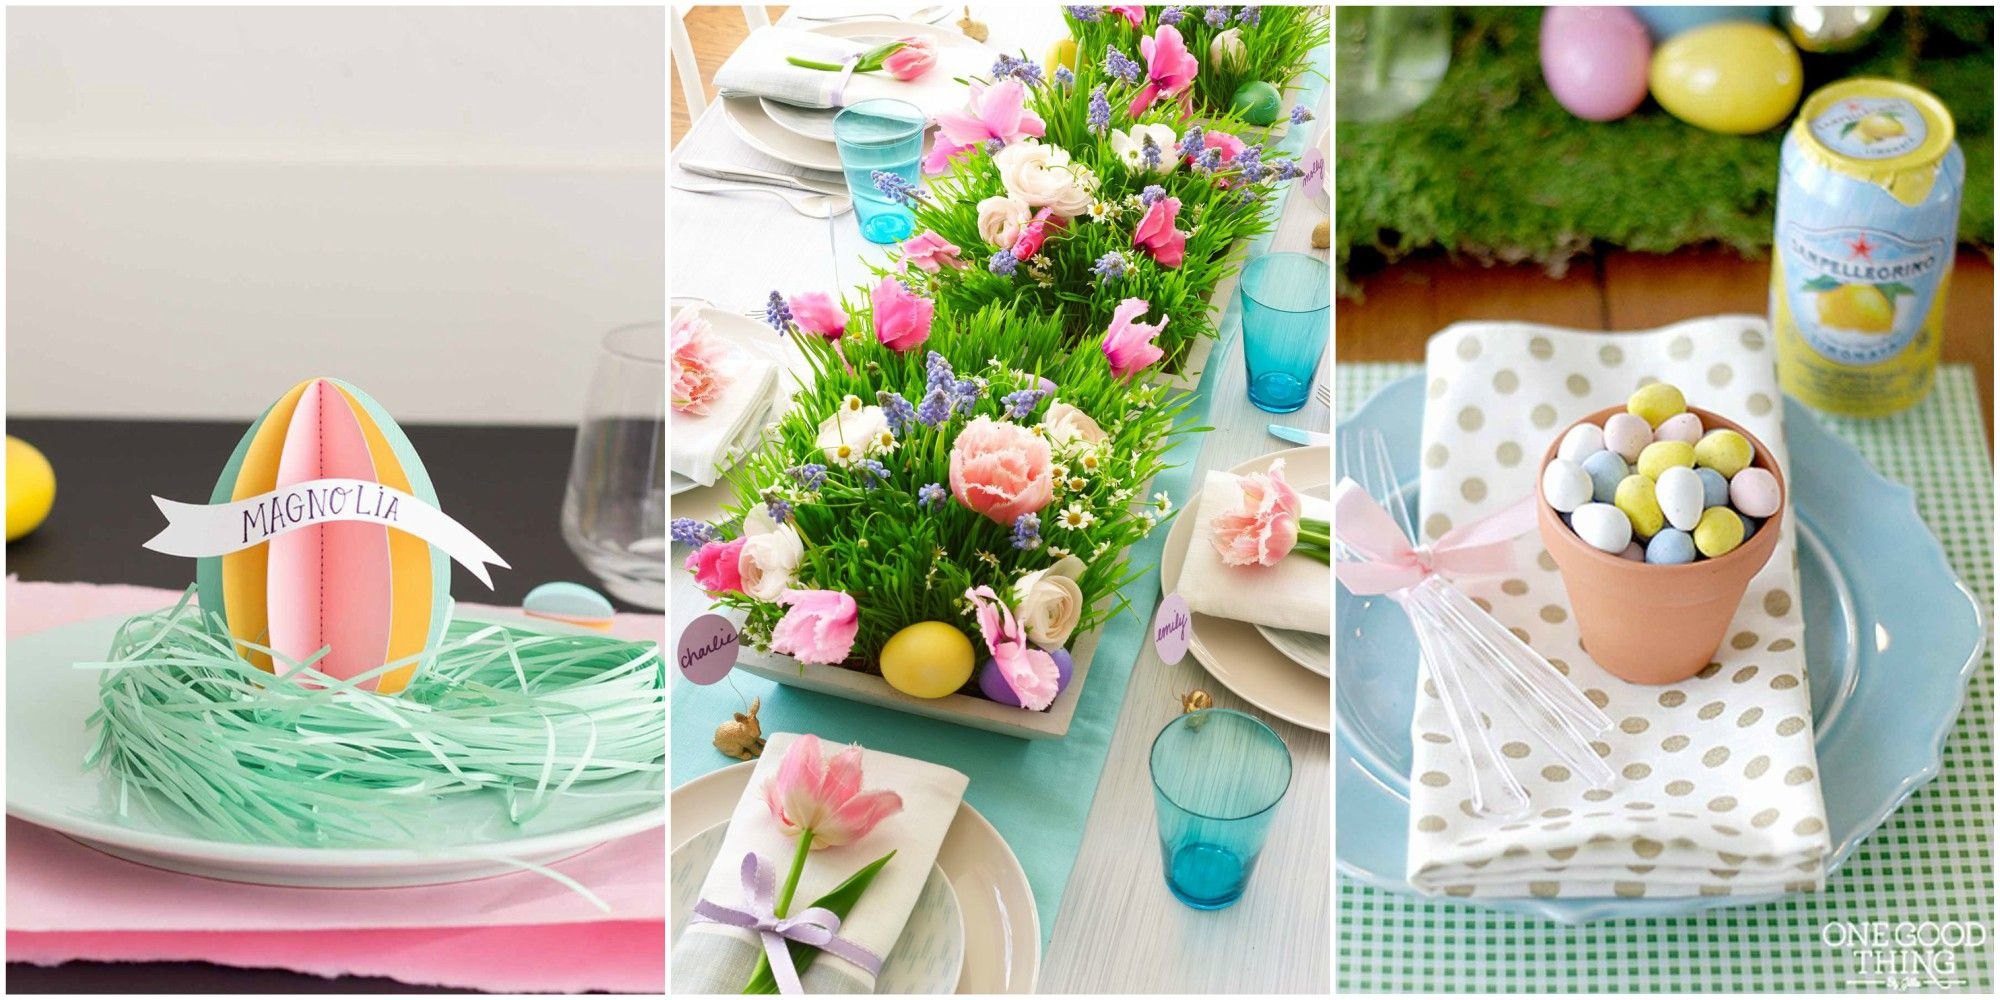 Easter table decorations ideas